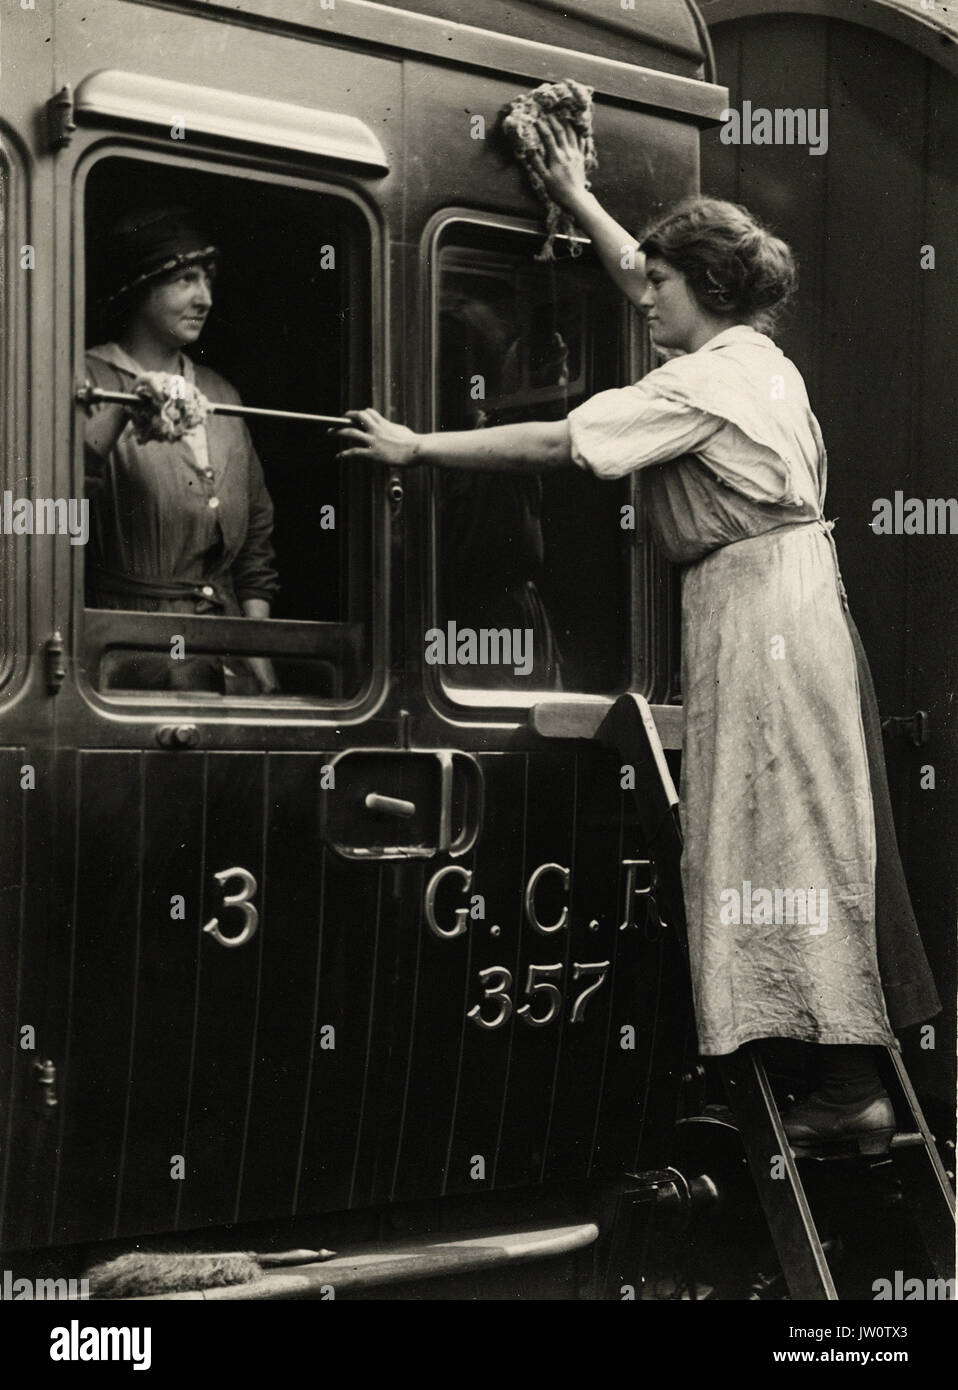 Railway workers cleaning carriages - Alternative Title: Women's Work - Stock Image